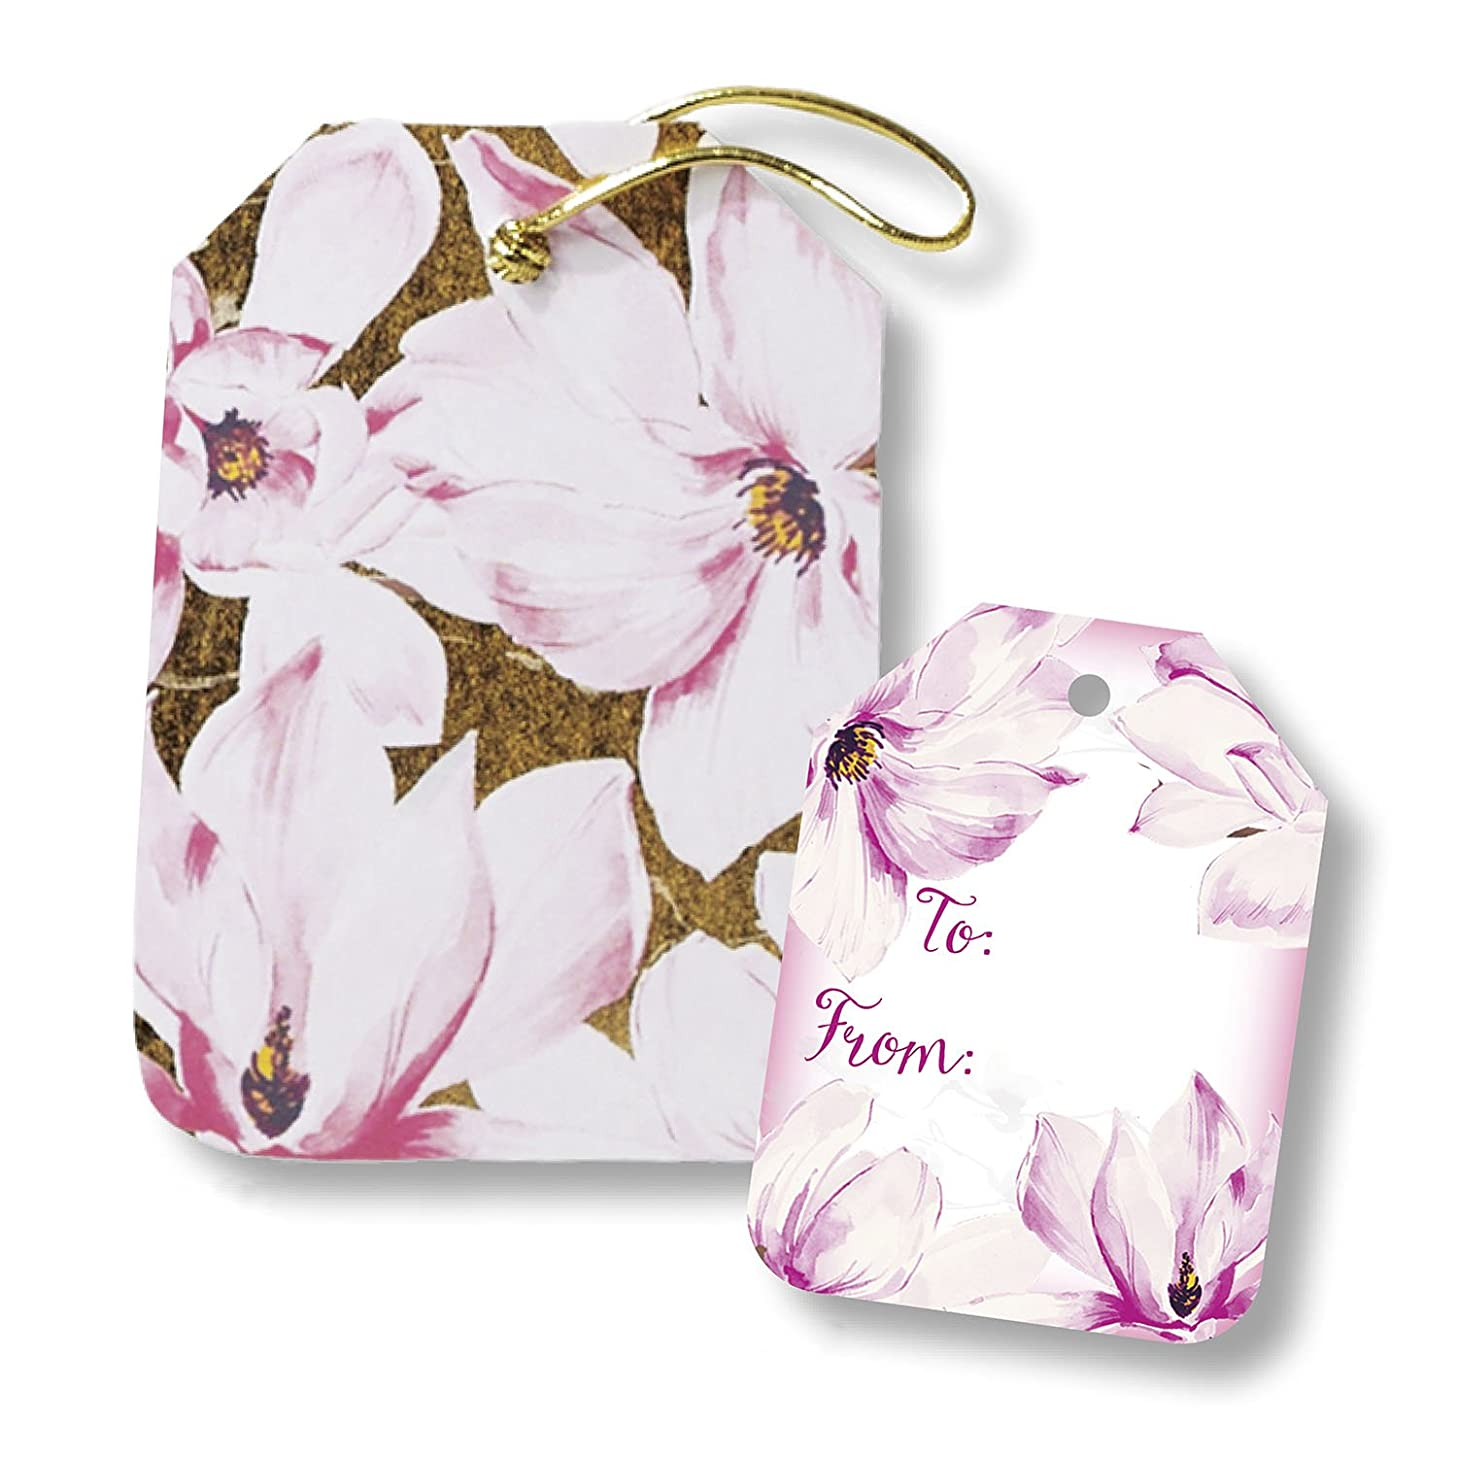 Jillson Roberts Bulk 100-Count Decorative String-Tie Gift Tags Available in 7 Different Designs, Magnolia Blossoms